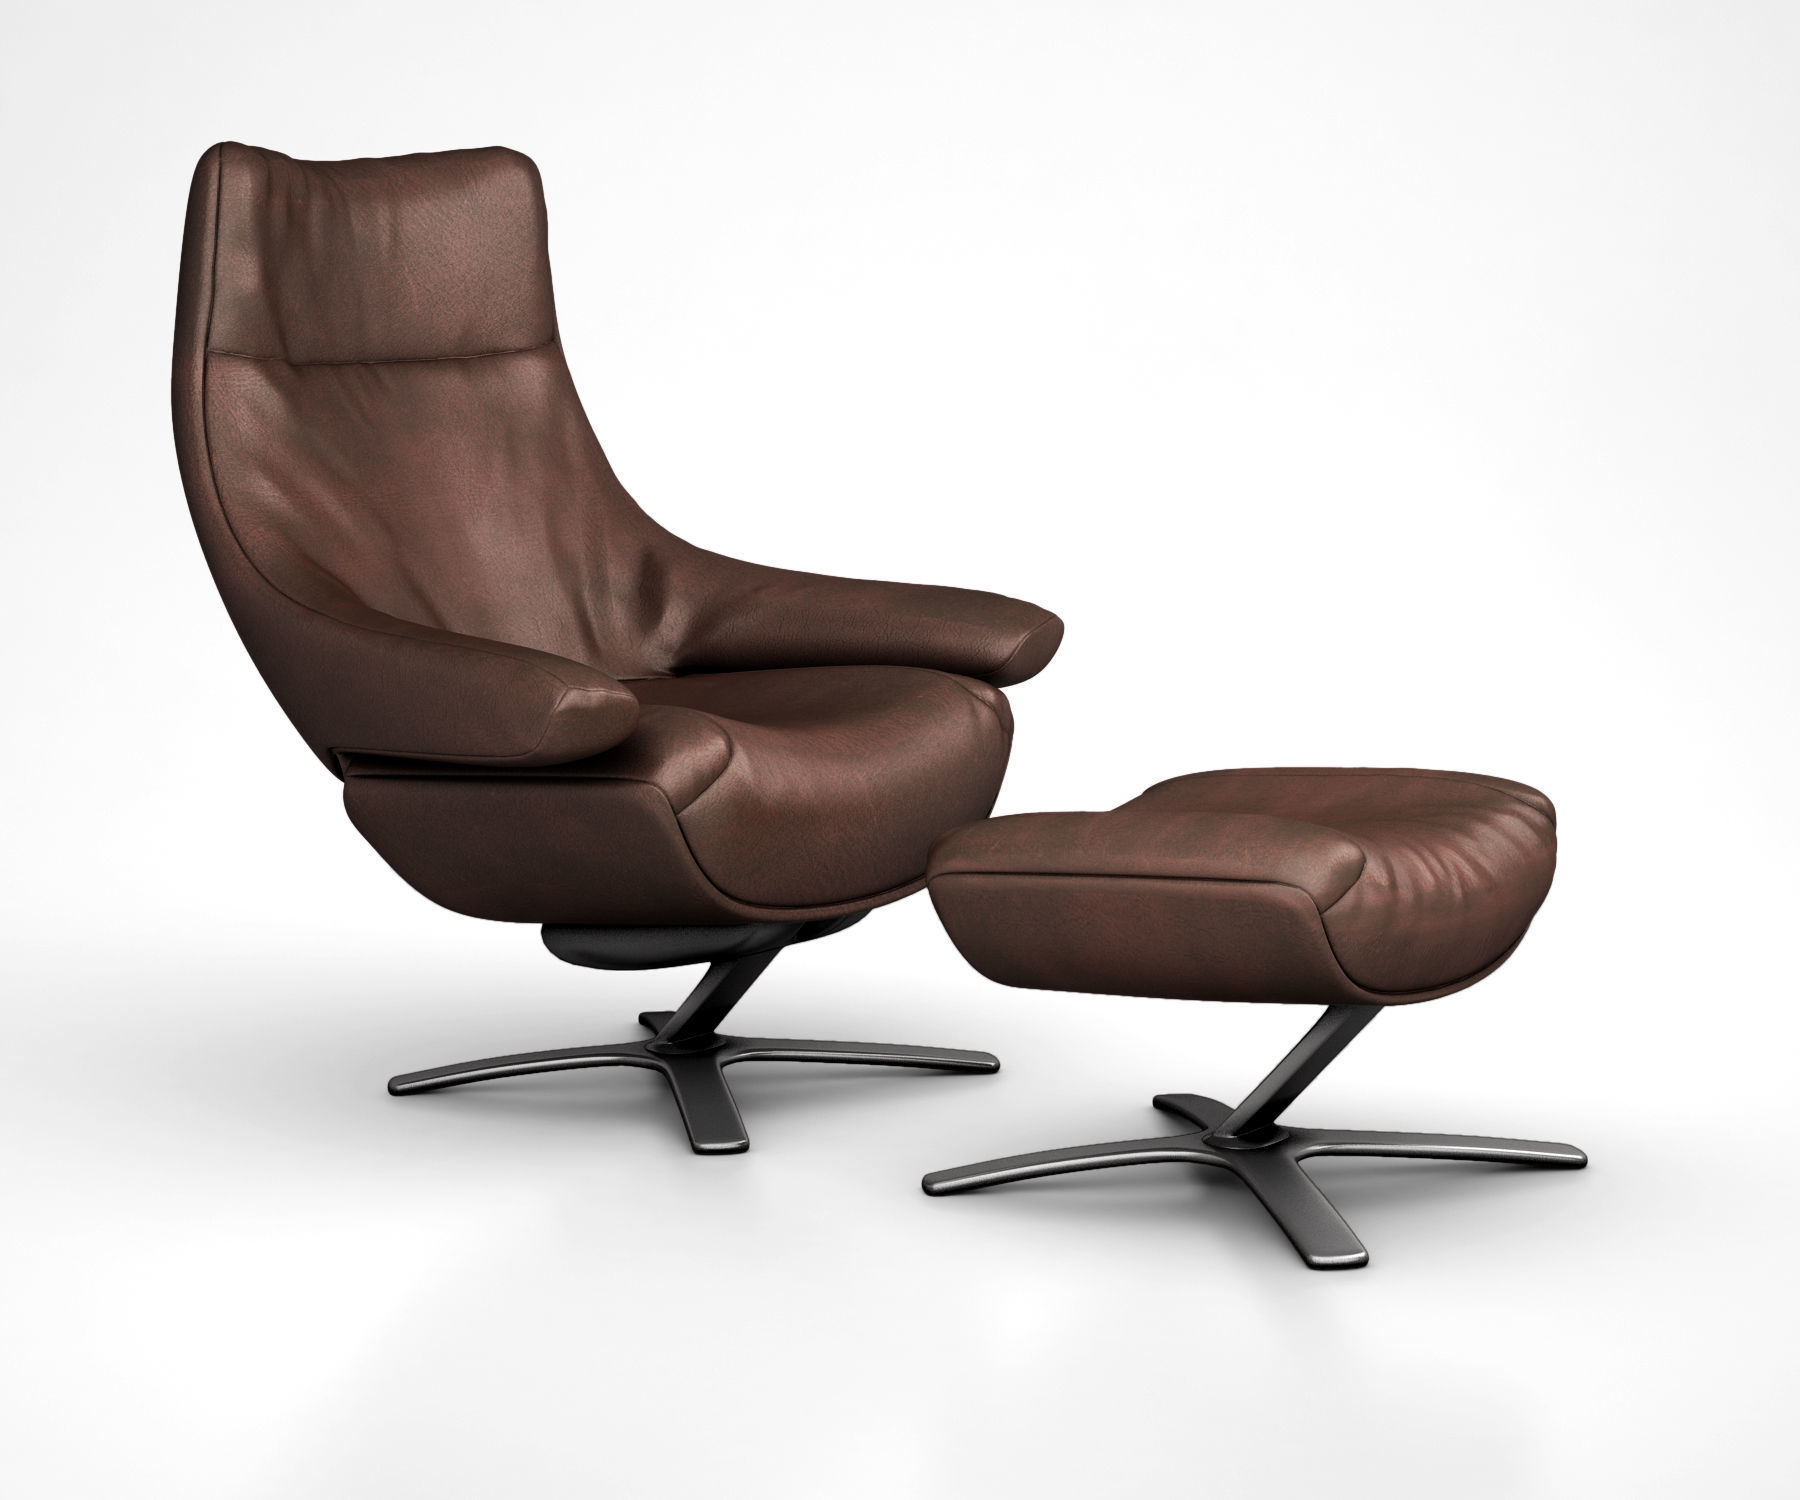 natuzzi gallery leather chair recliner editions swivel recliners red